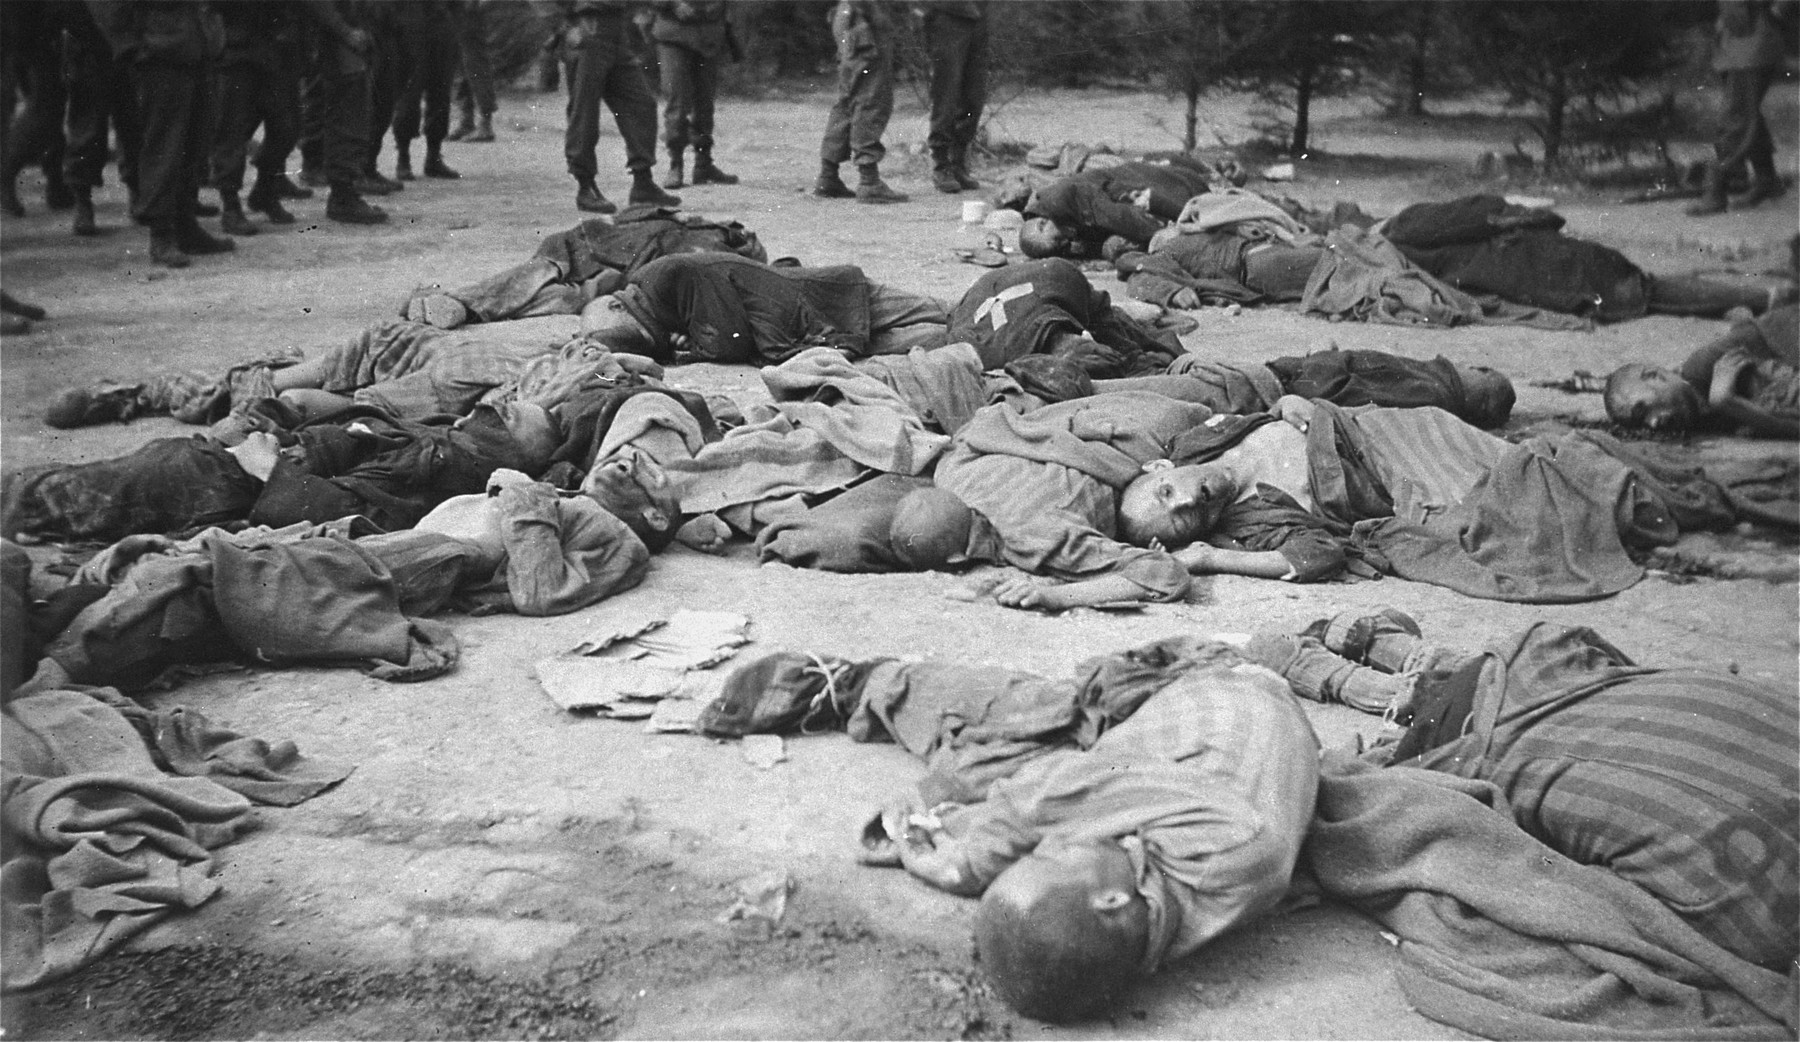 American soldiers view the bodies of prisoners shot by the SS during the evacuation of the Ohrdruf concentration camp.